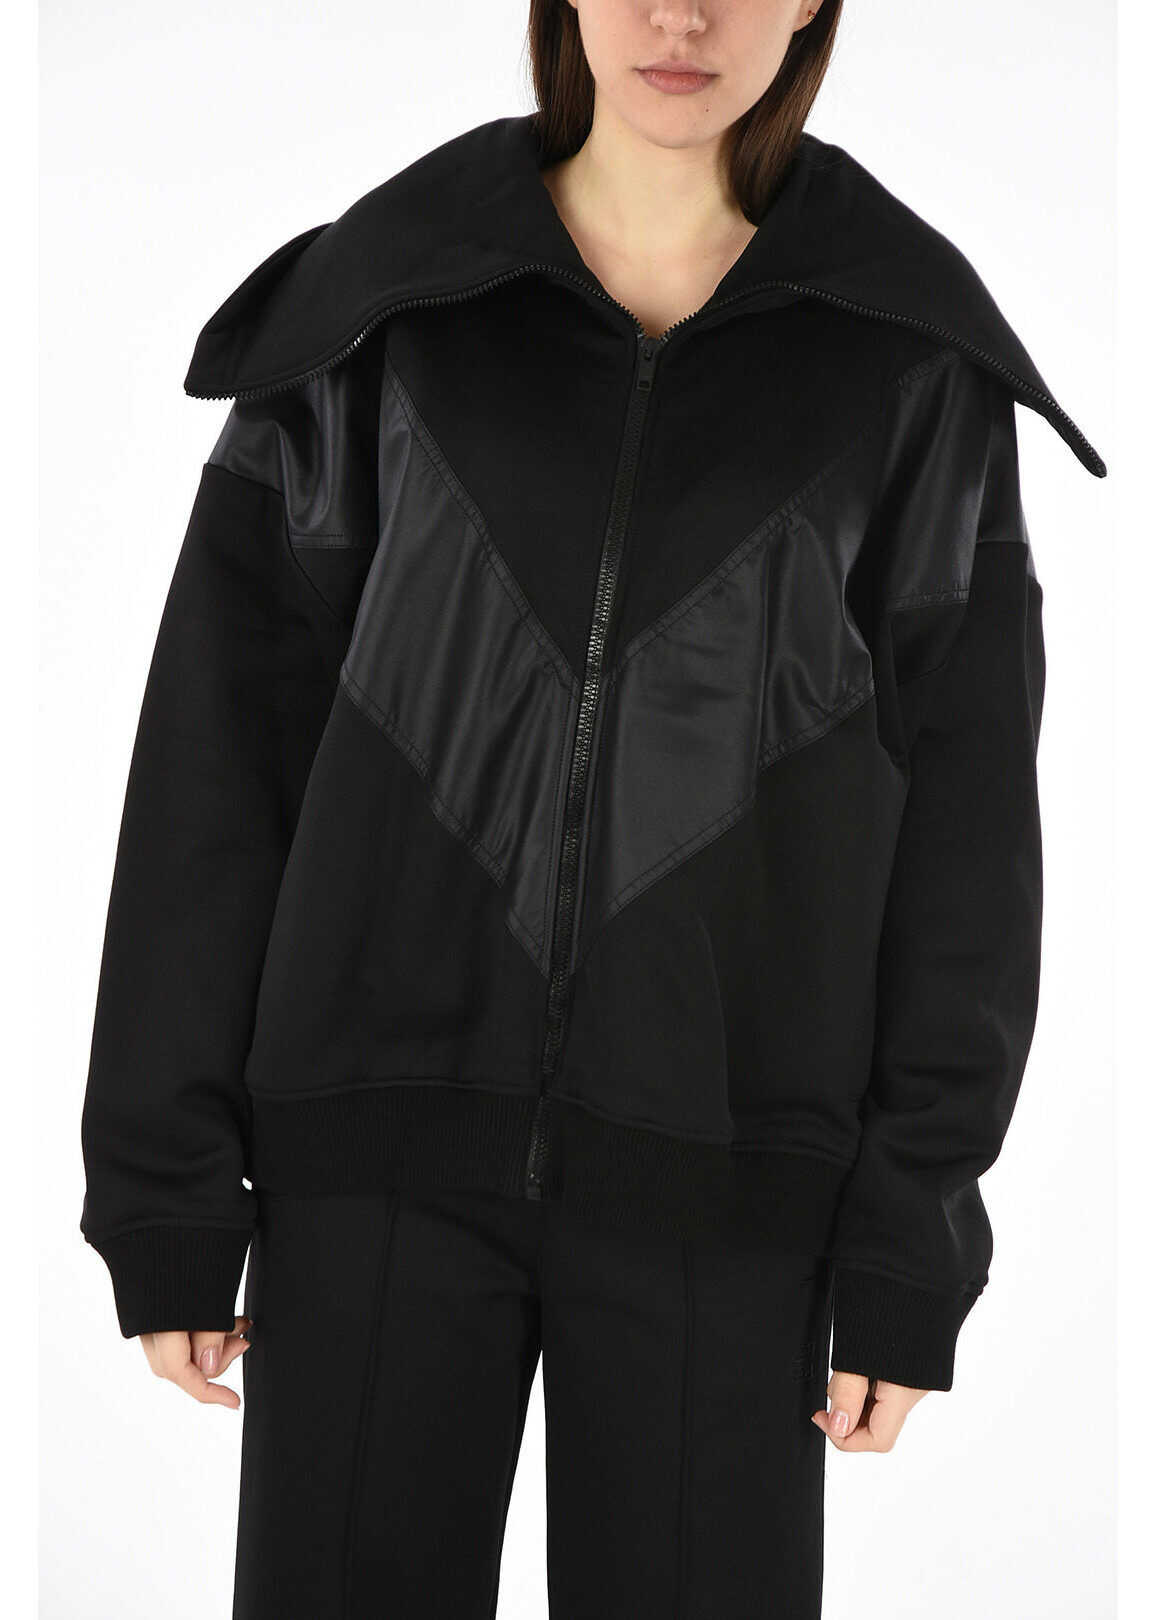 Givenchy full zip outerwear BLACK